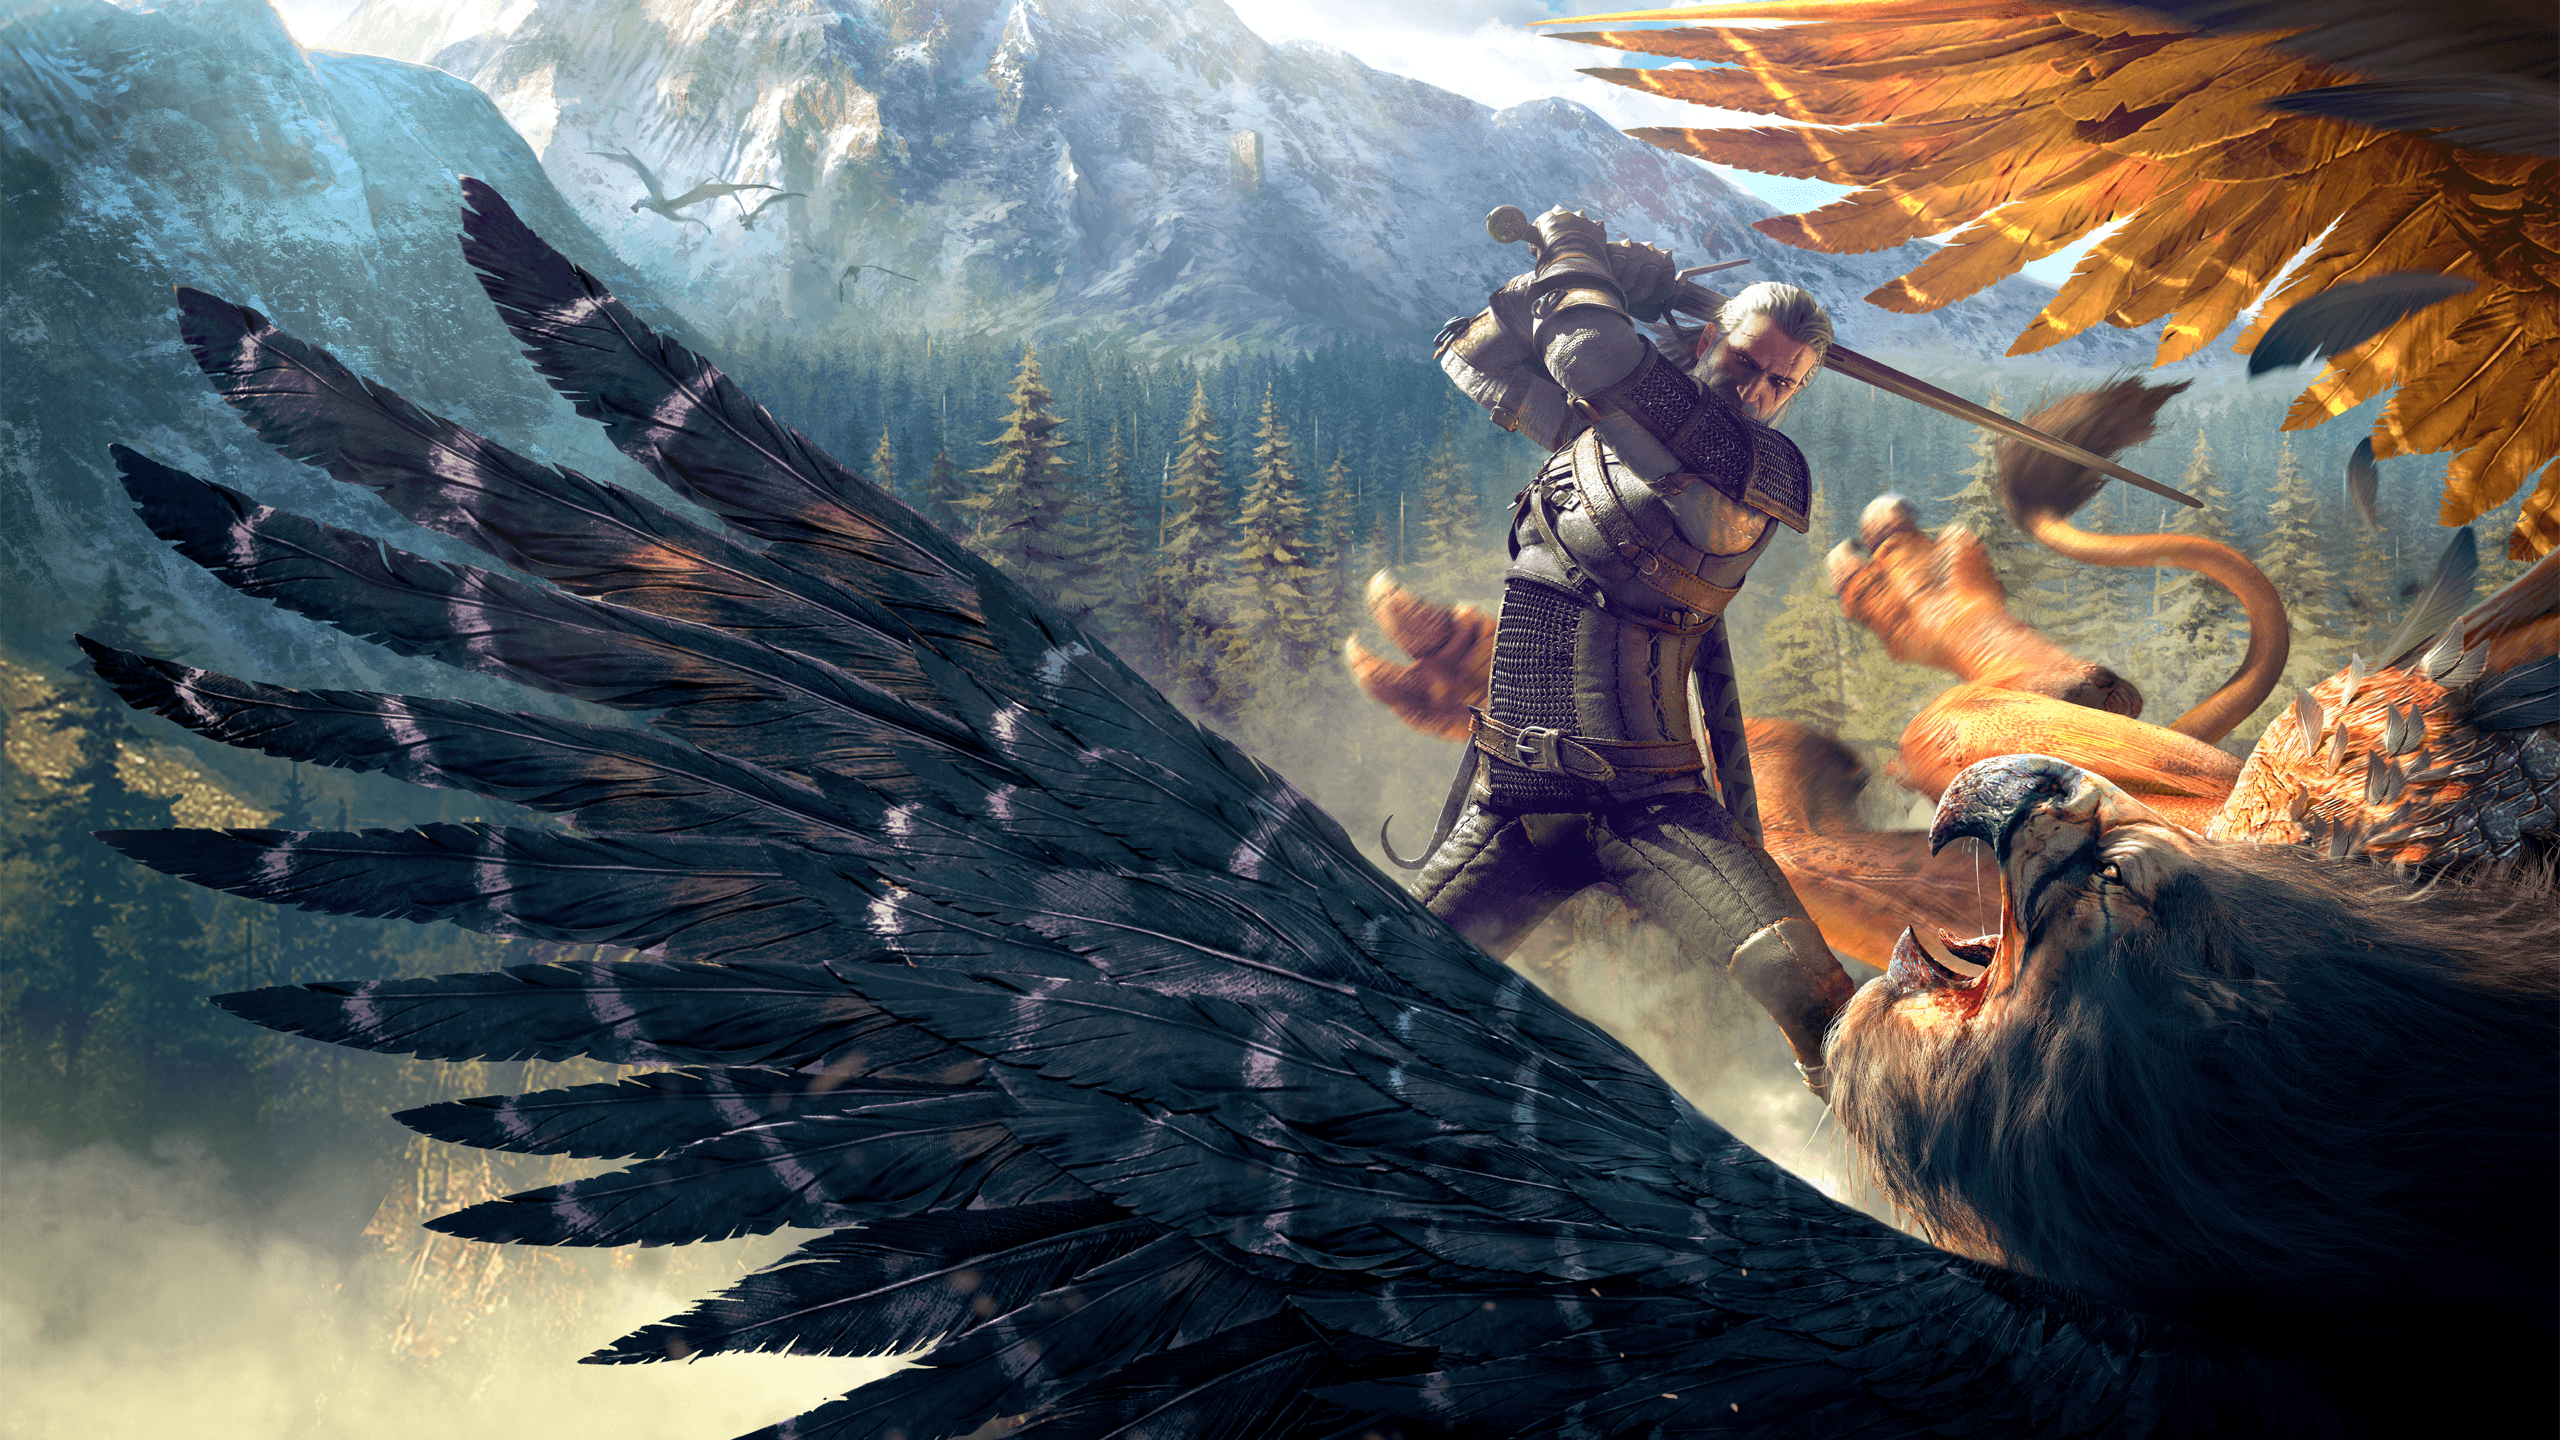 High Resolution Gaming Wallpapers: 1440p Wallpapers